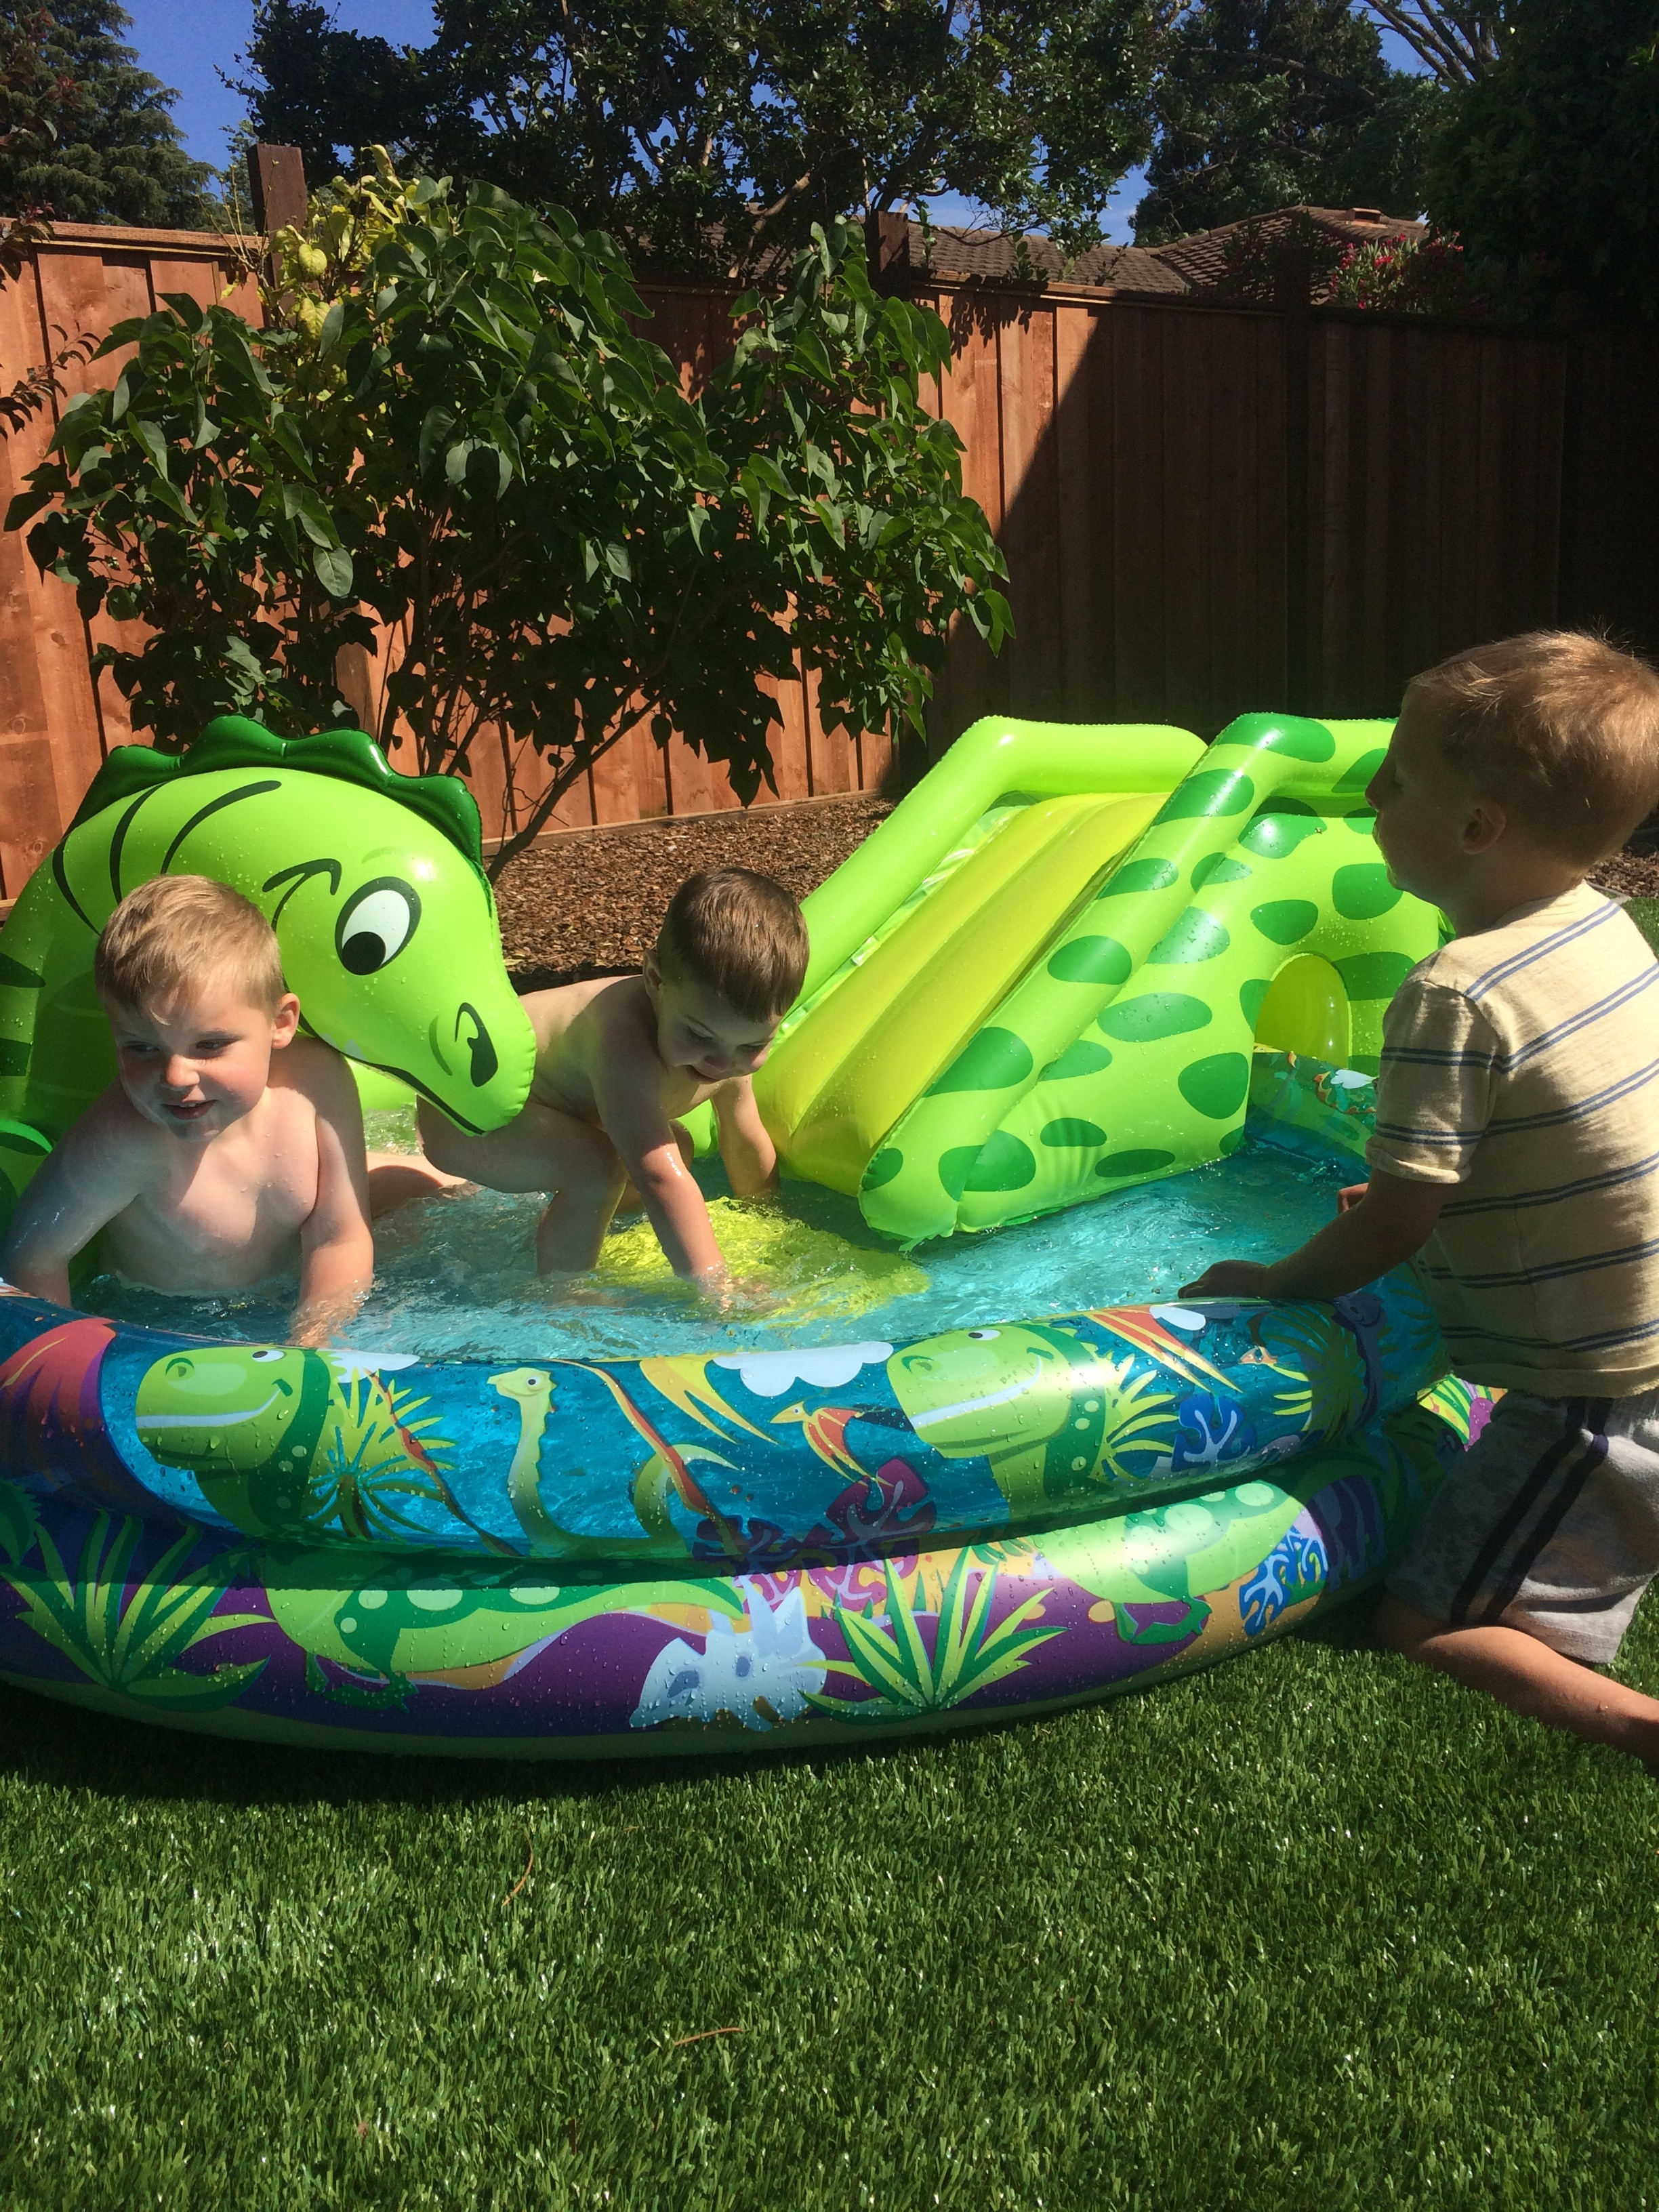 Damien, Everett, and Atticus playing in my sister's backyard.